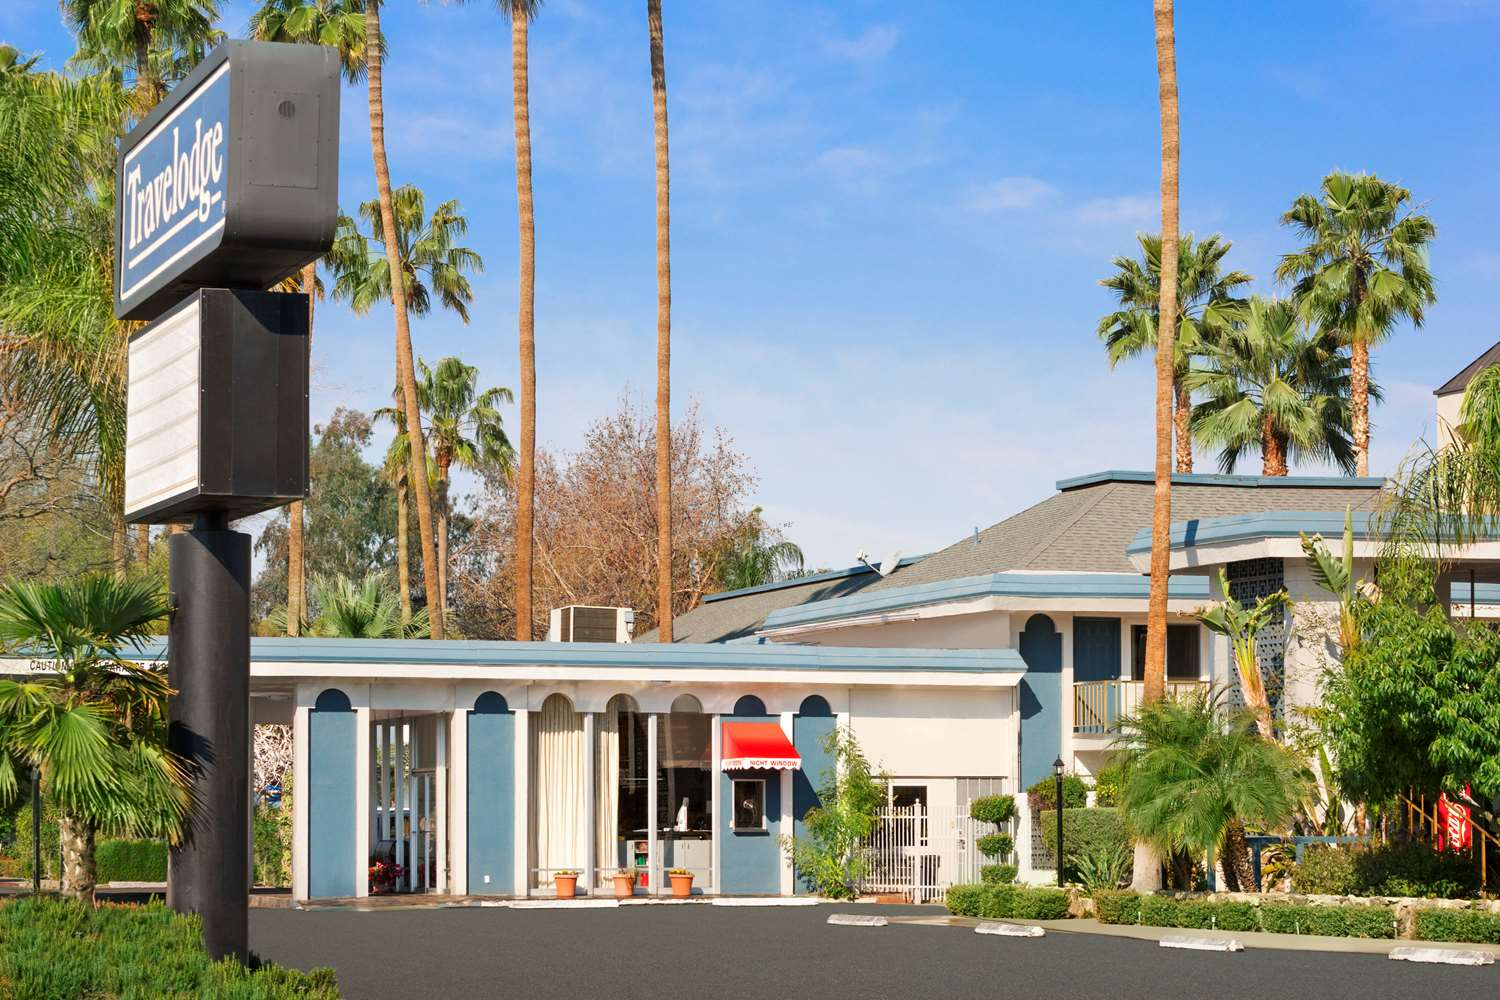 Exterior view - Travelodge Bakersfield